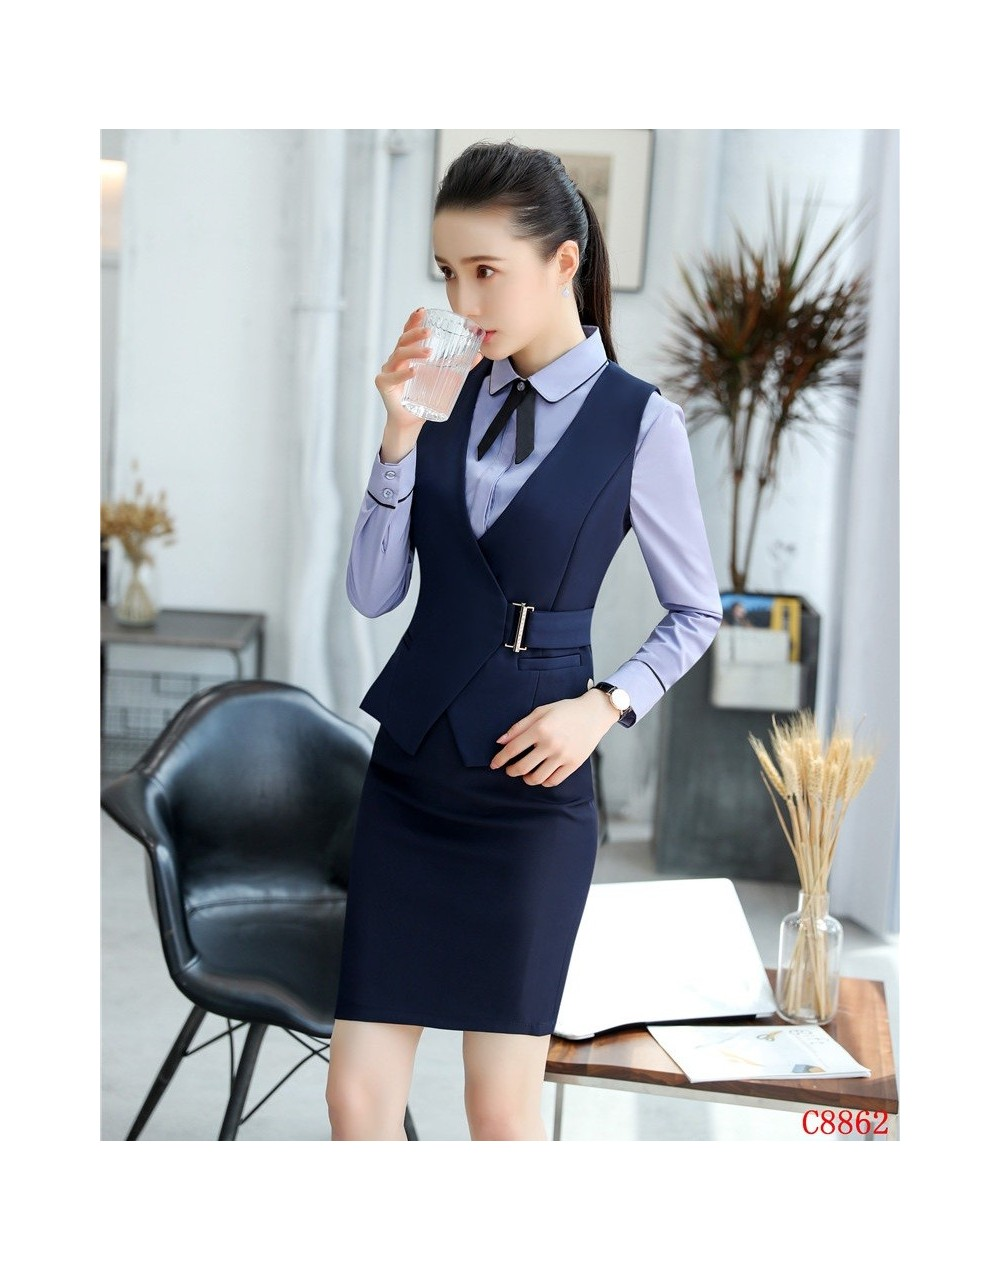 Formal Ladies Navy blueVest & Waistcoat Women Business Suits 2 Piece Skirt and Top Sets Office Uniform Styles - 4S3029805023